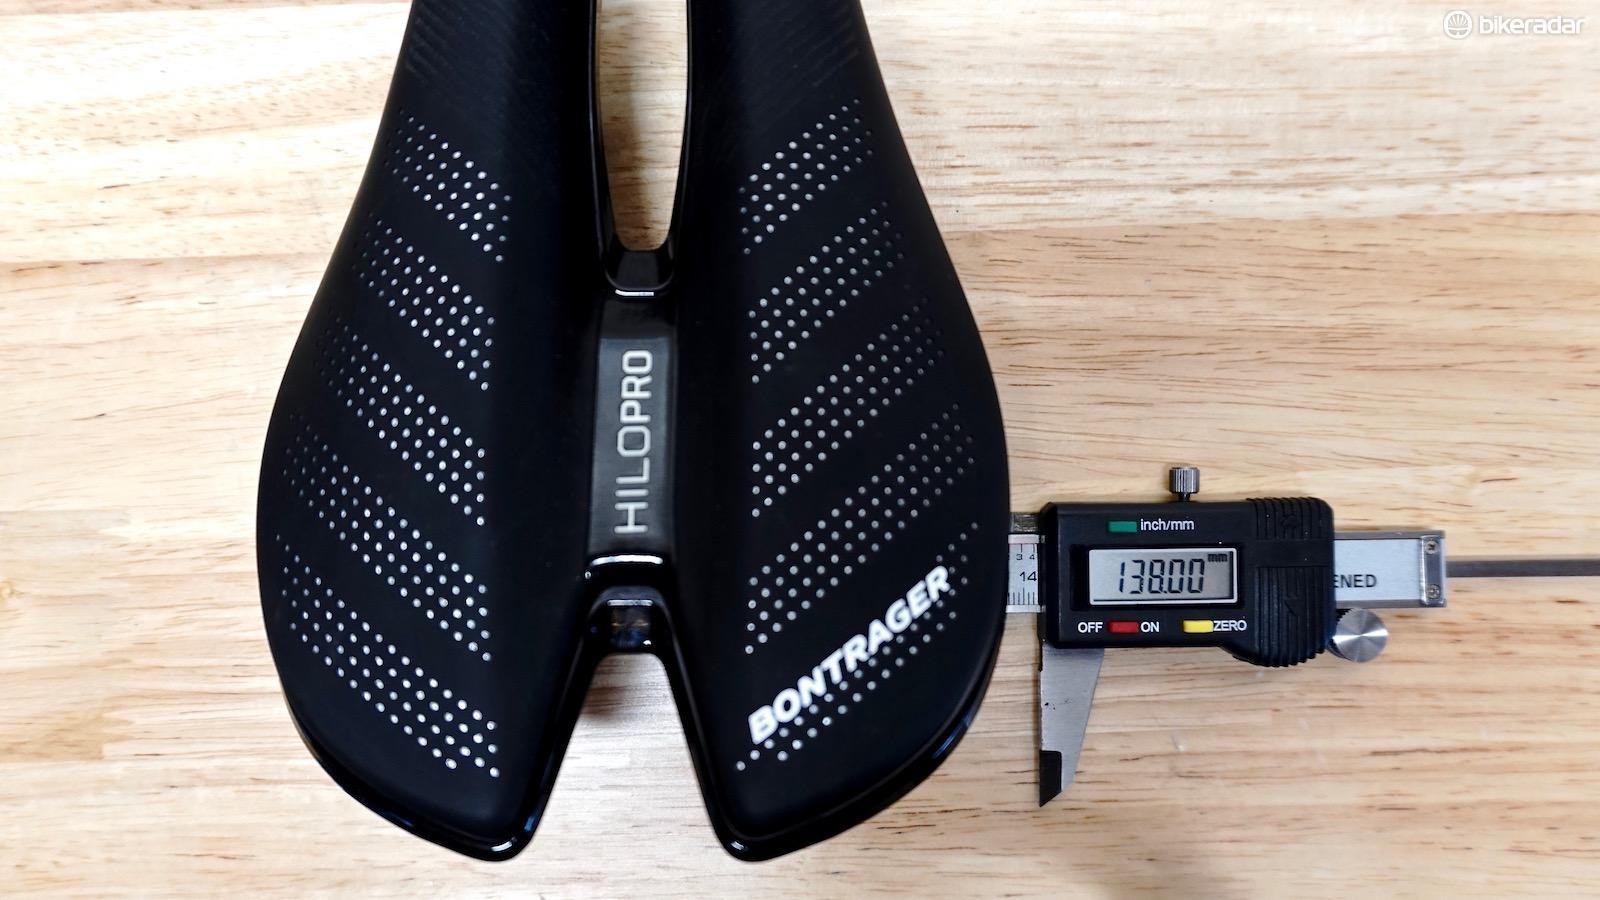 This saddle is 138mm but is made for cyclists in a very aggressive front-end position, resting on the pubic rami (which are more narrow than ischial tuberosities)